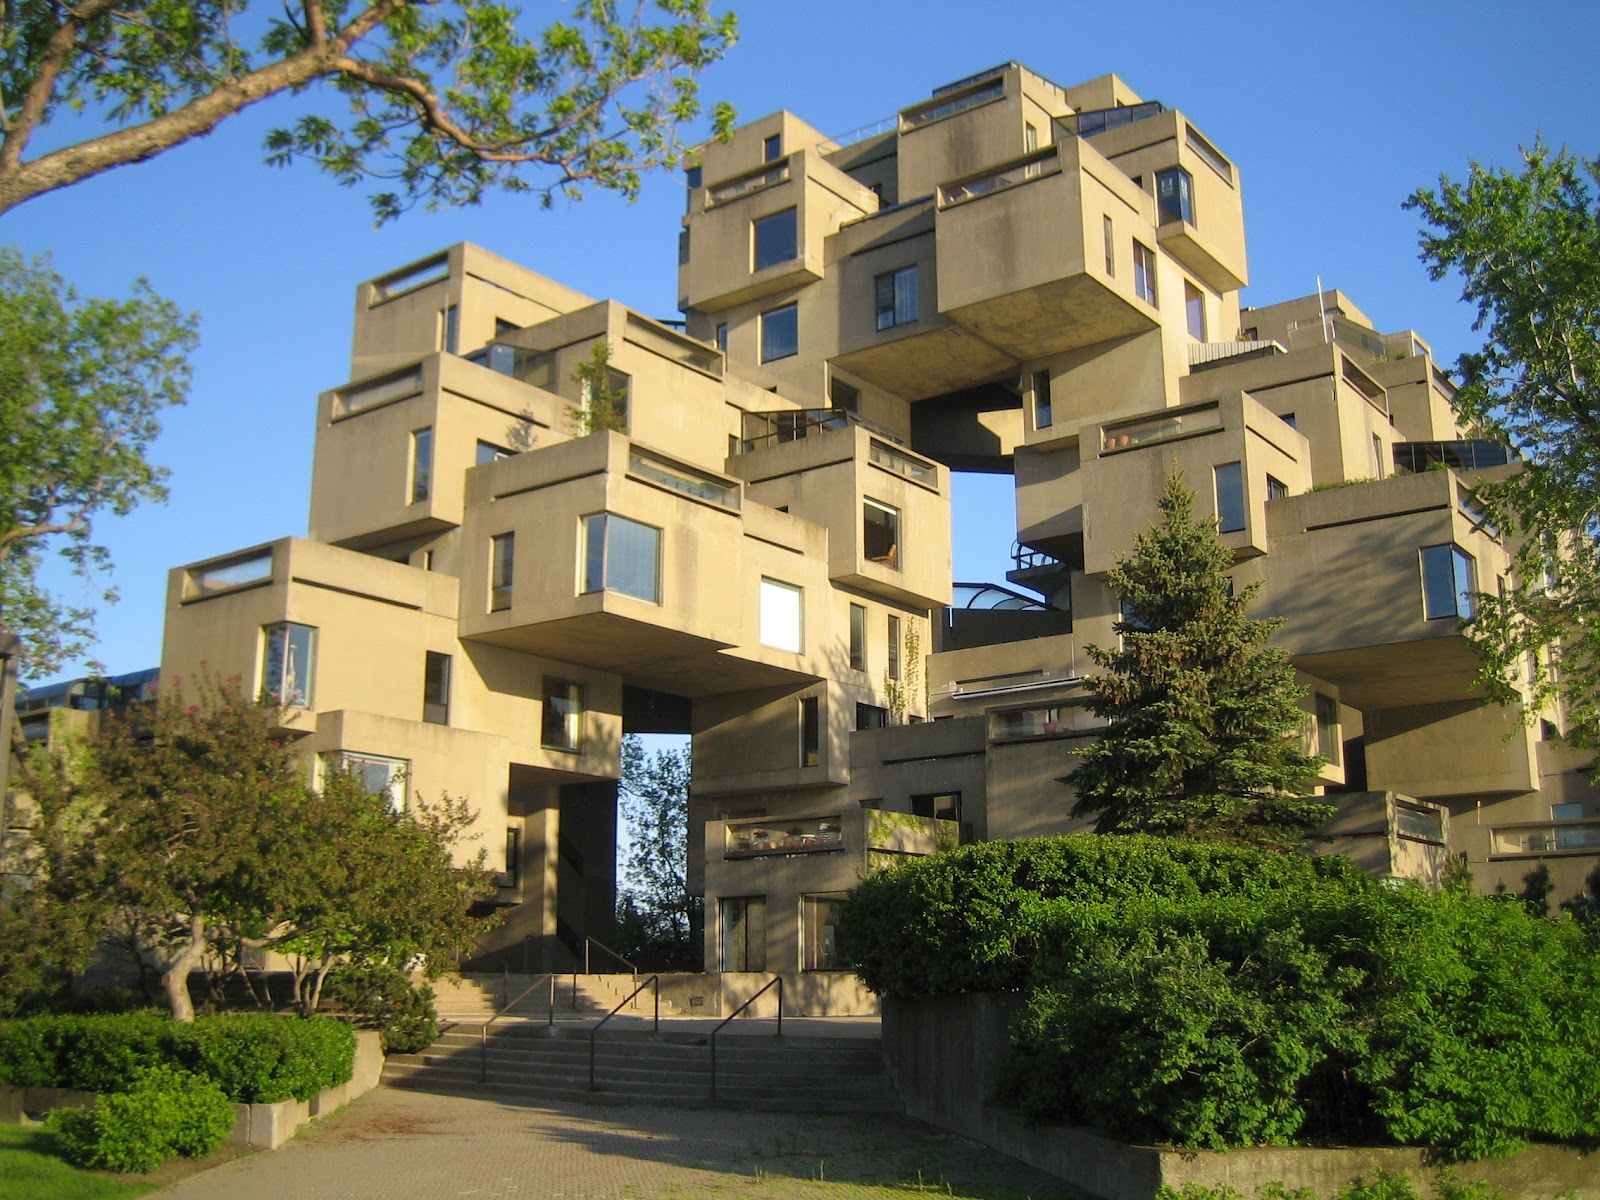 Habitat 67 3 By Moshe Safdie Cube Modern Architecture